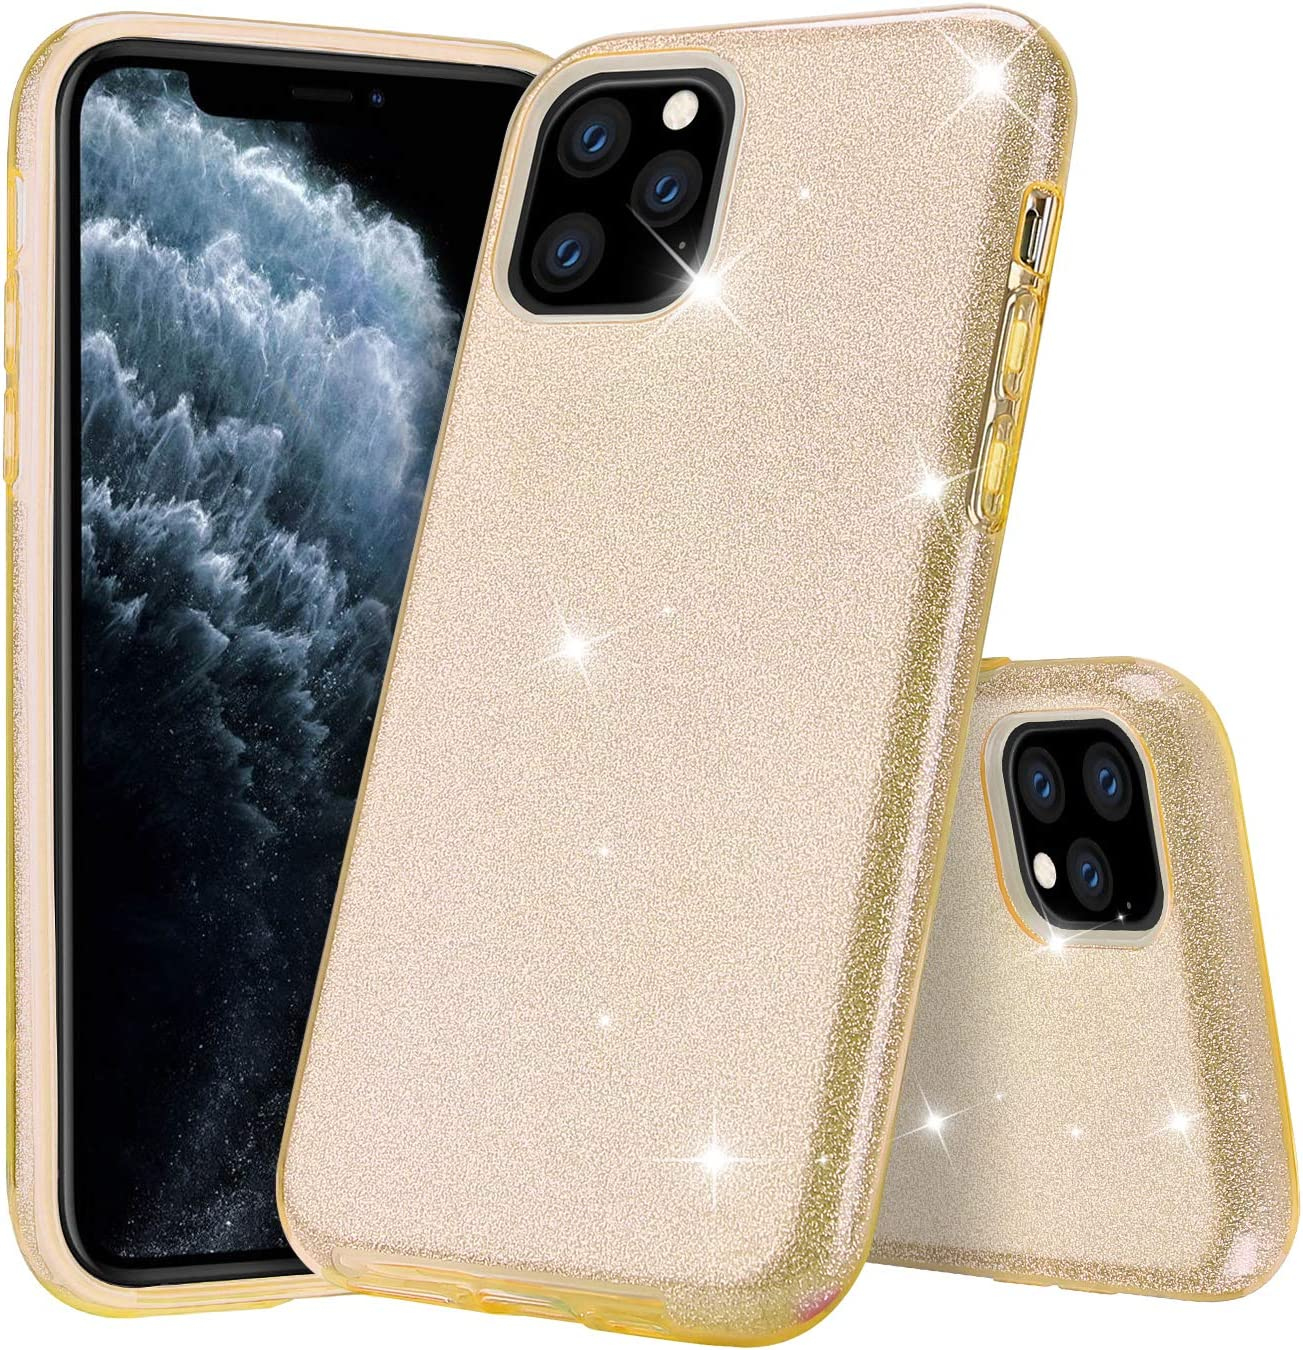 Polaland iPhone 11 Pro Max Case, Cute Sparkle Glitter Protective Cover with  Soft Bumper and Bling Luxury Shiny Hybrid Layer [Support Wireless